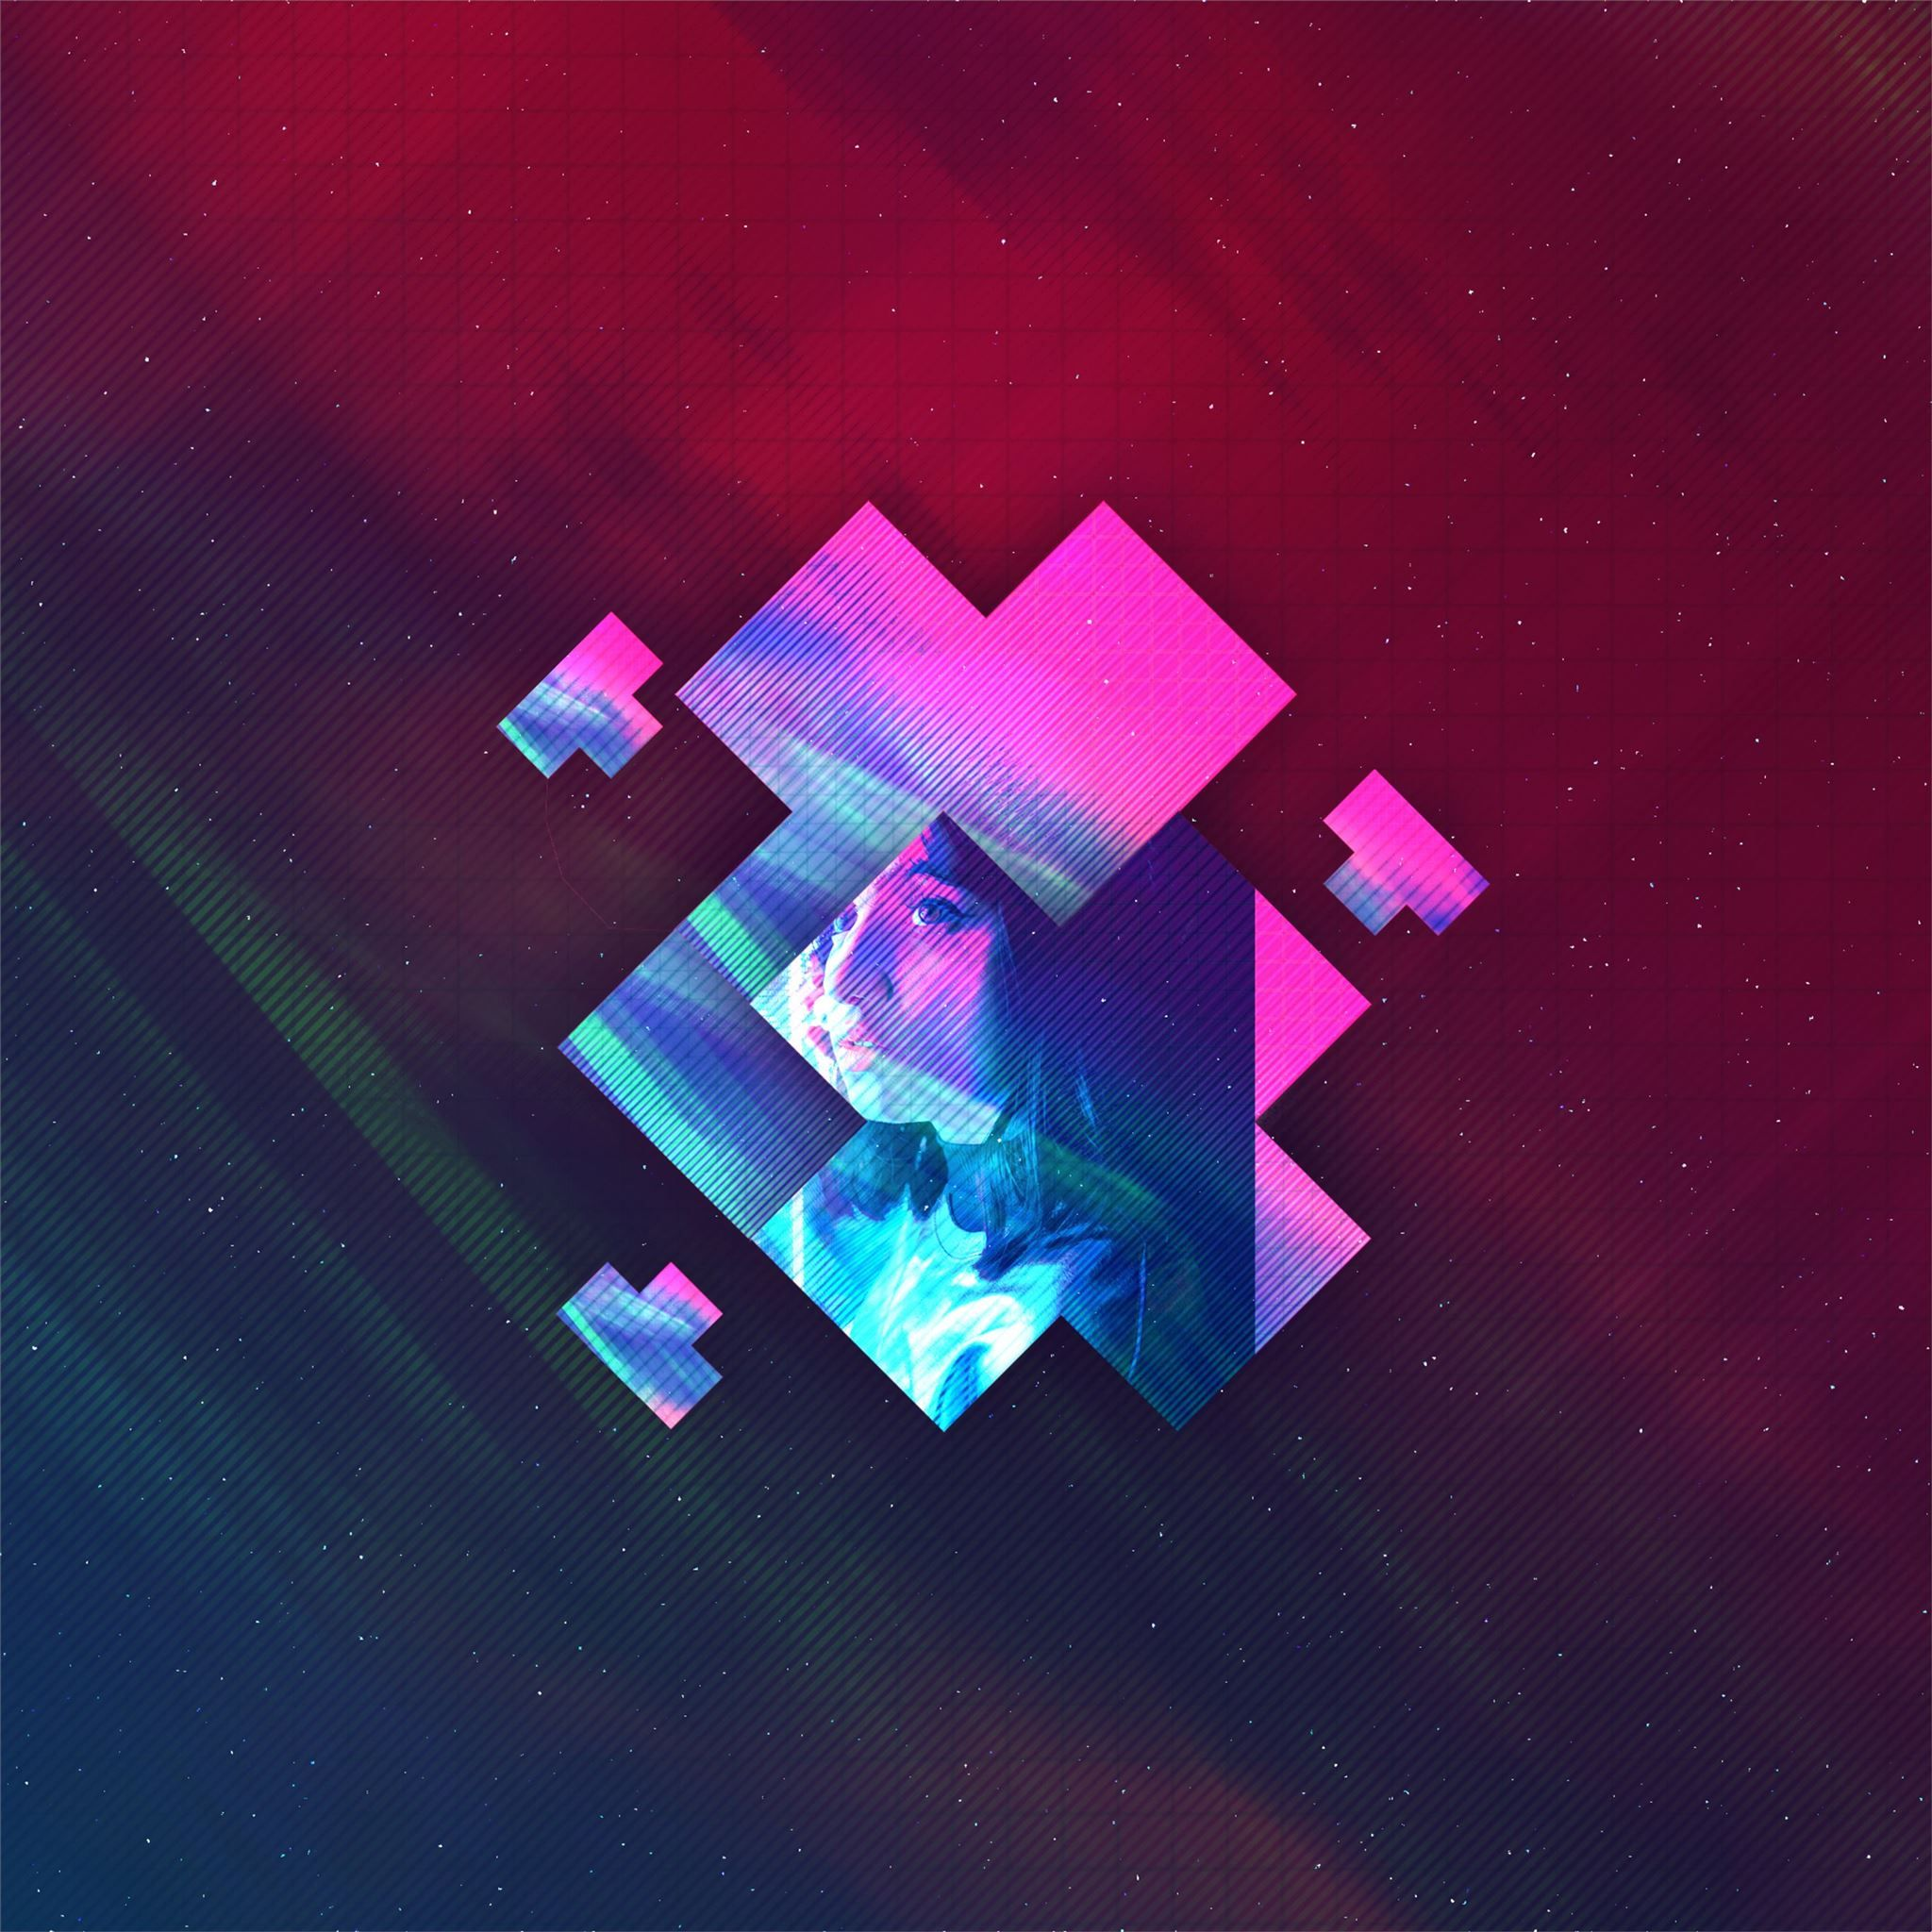 Abstract Outrun Girl 4k Ipad Air Wallpapers In 2020 With Images Ipad Air Wallpaper Abstract Wallpaper